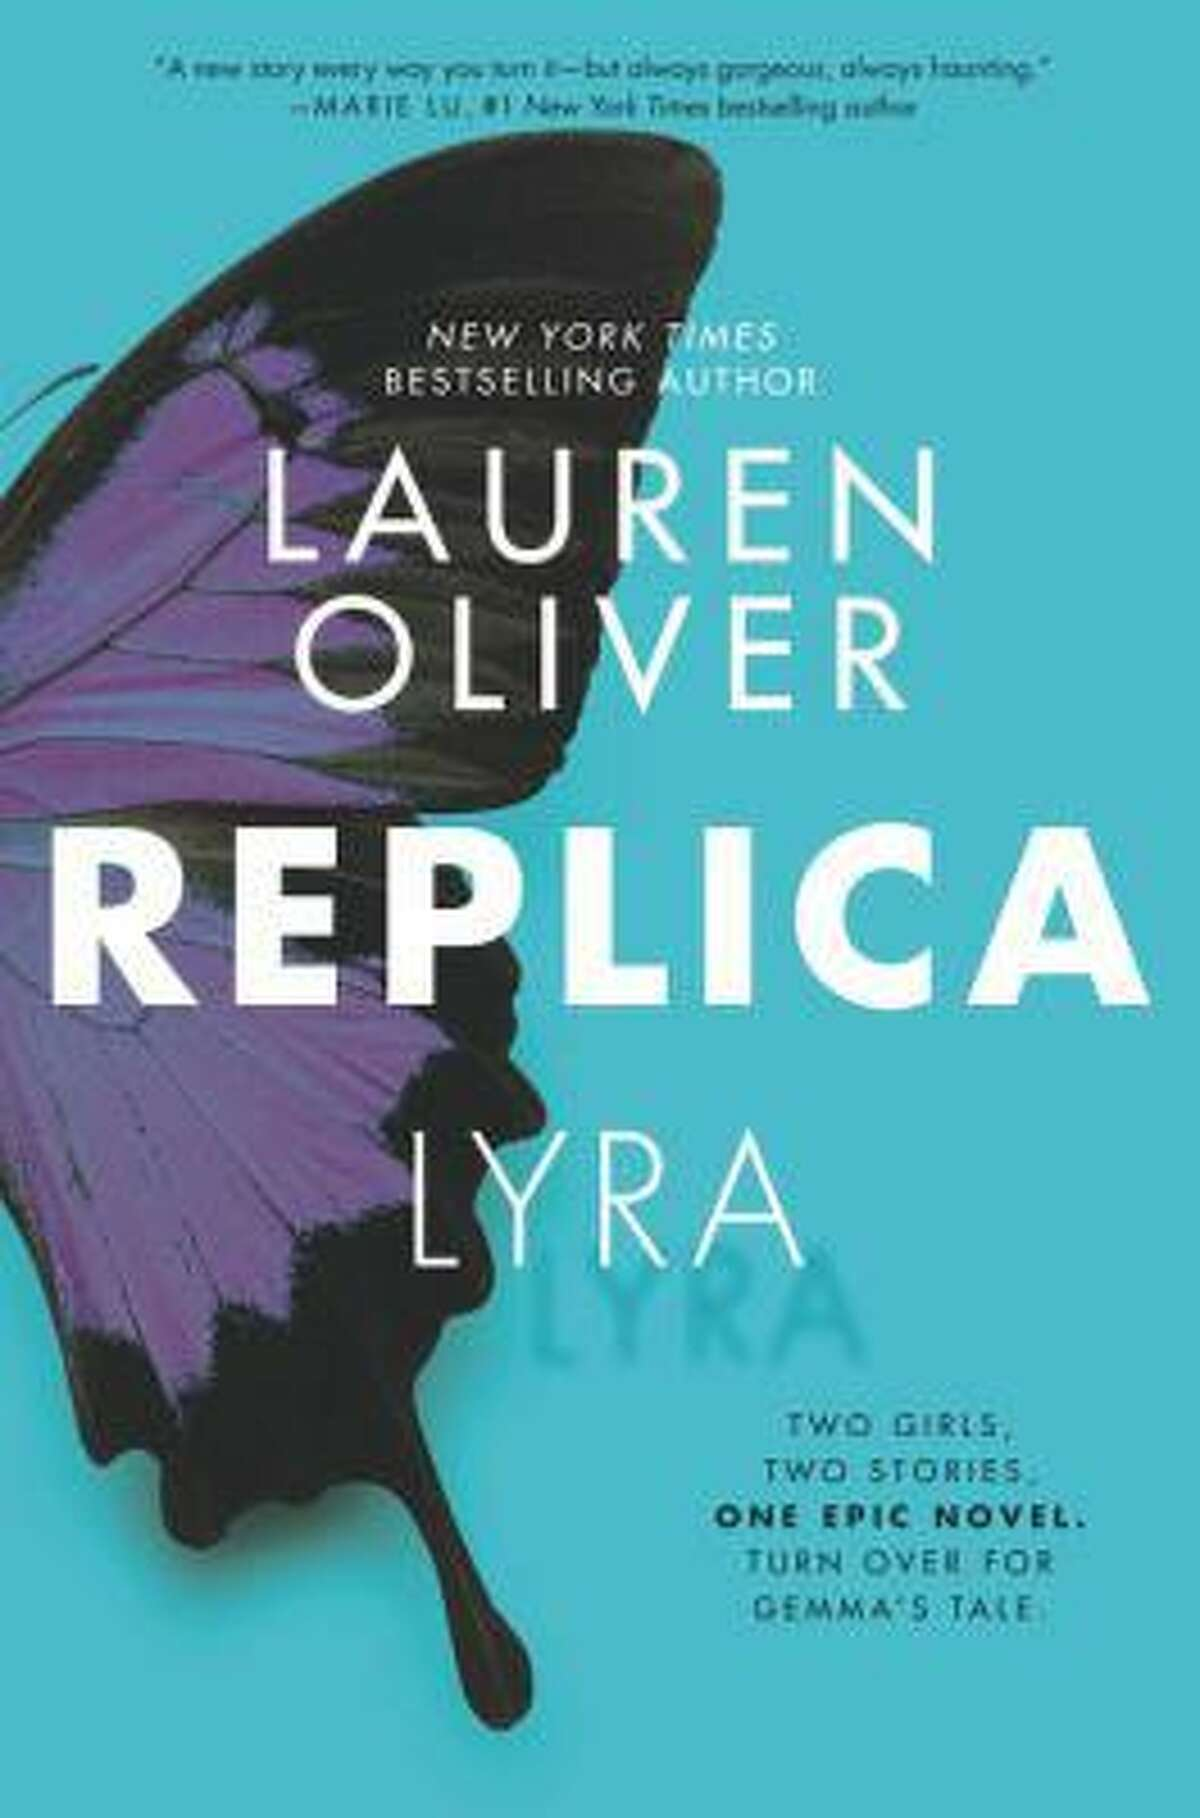 On Sept. 8, the YA book club will discuss 'Replica' by Lauren Olivier.